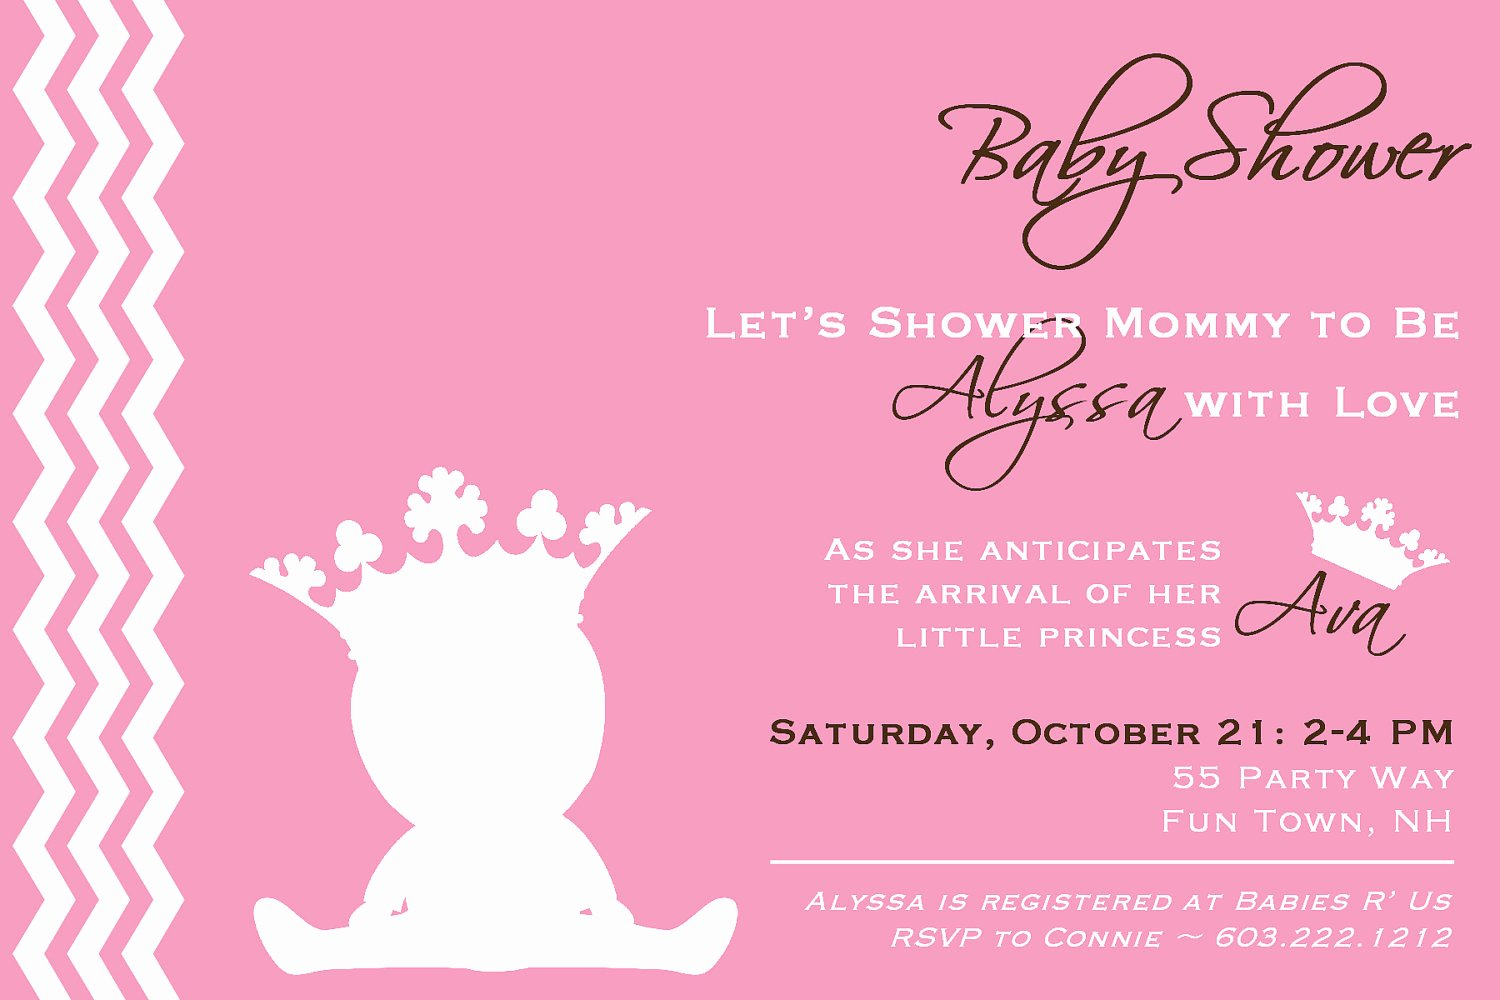 Princess Baby Shower Invitations Best Of Princess Baby Shower Invitation Girl Princess Baby Shower